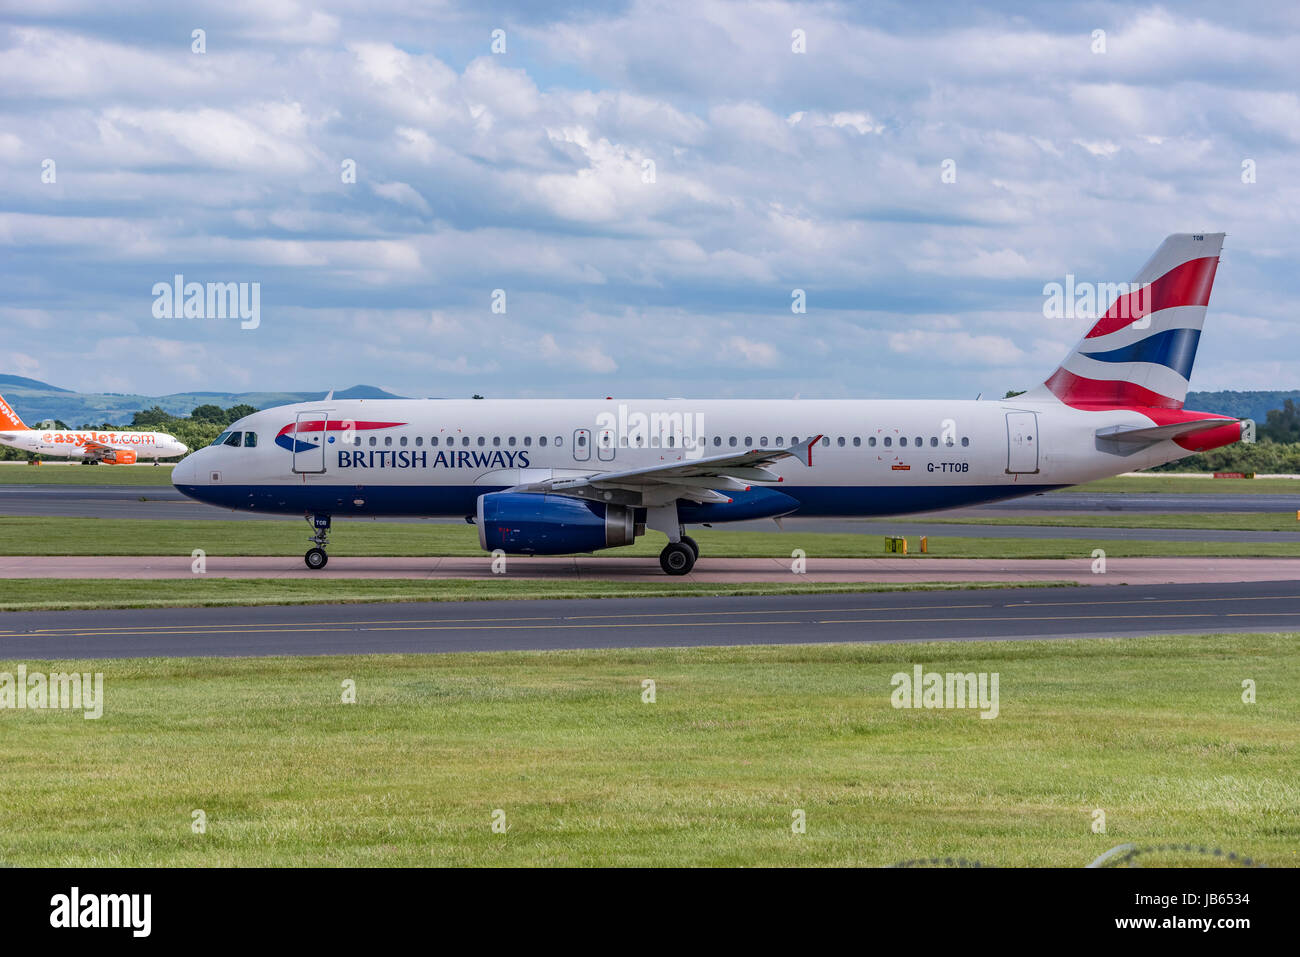 Aircraft Manchester airport British Airways Airbus A320 - Stock Image